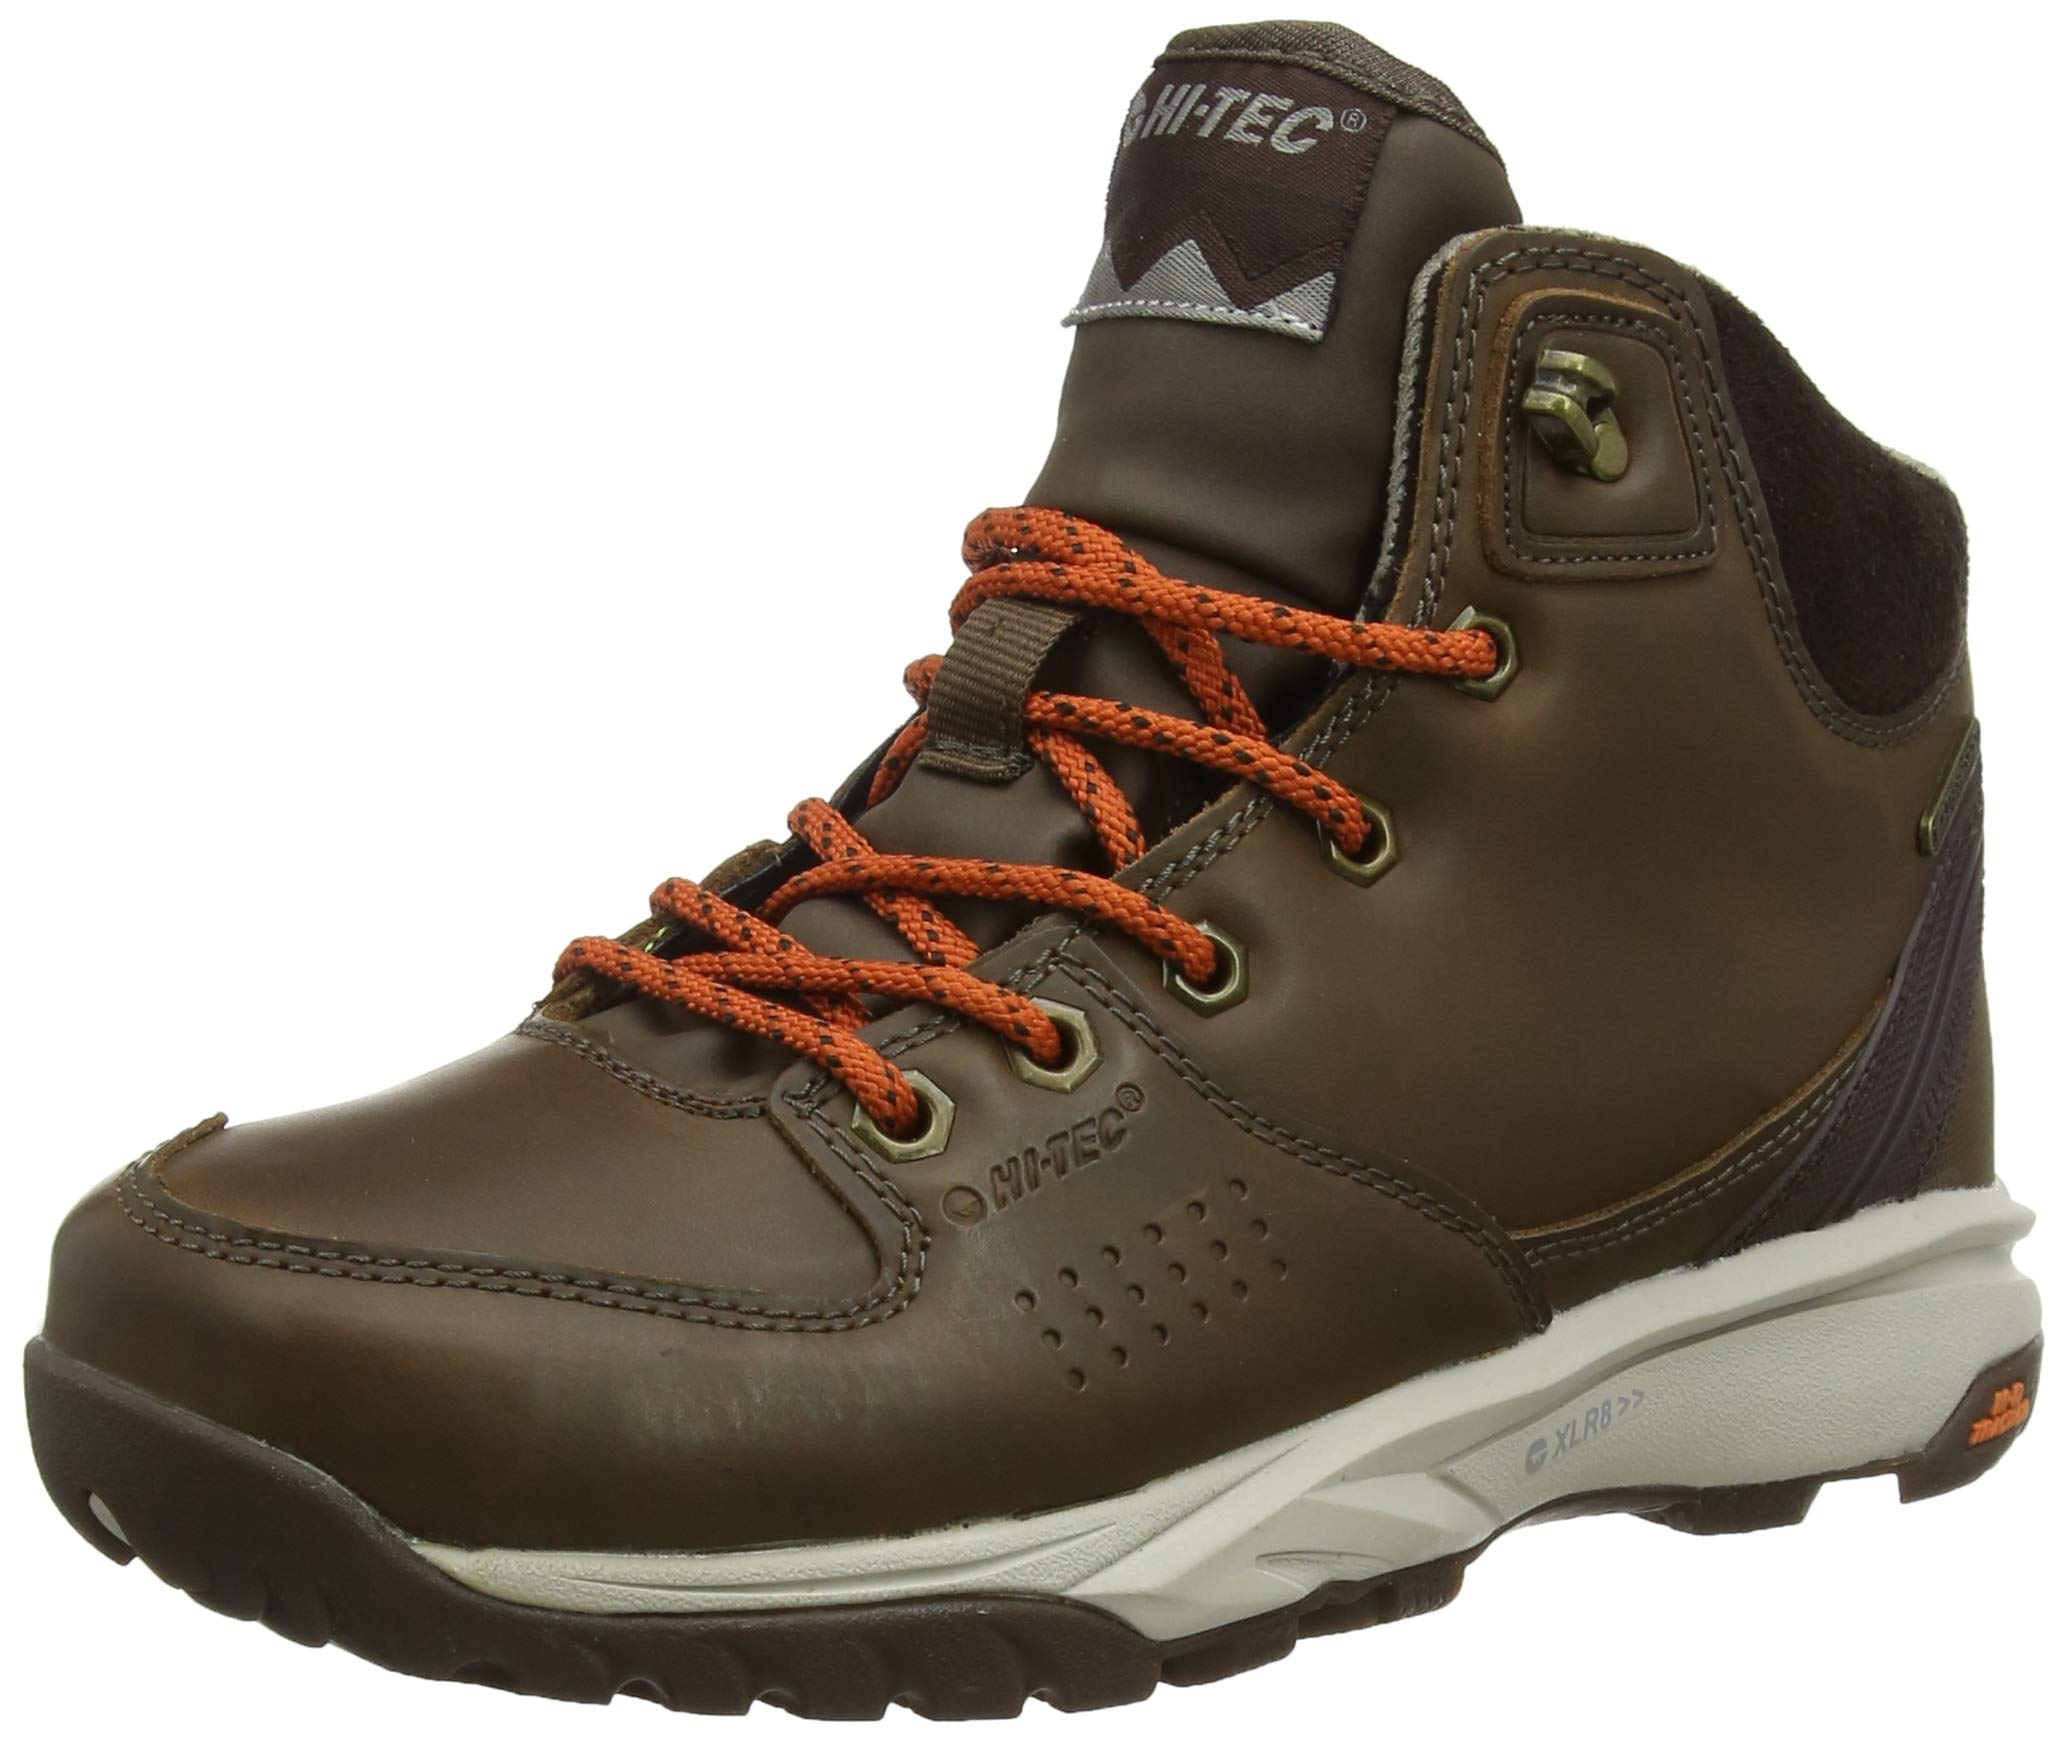 Hi-Tec Women's Wild-Life Luxe I Waterproof High Rise Hiking Boots 1